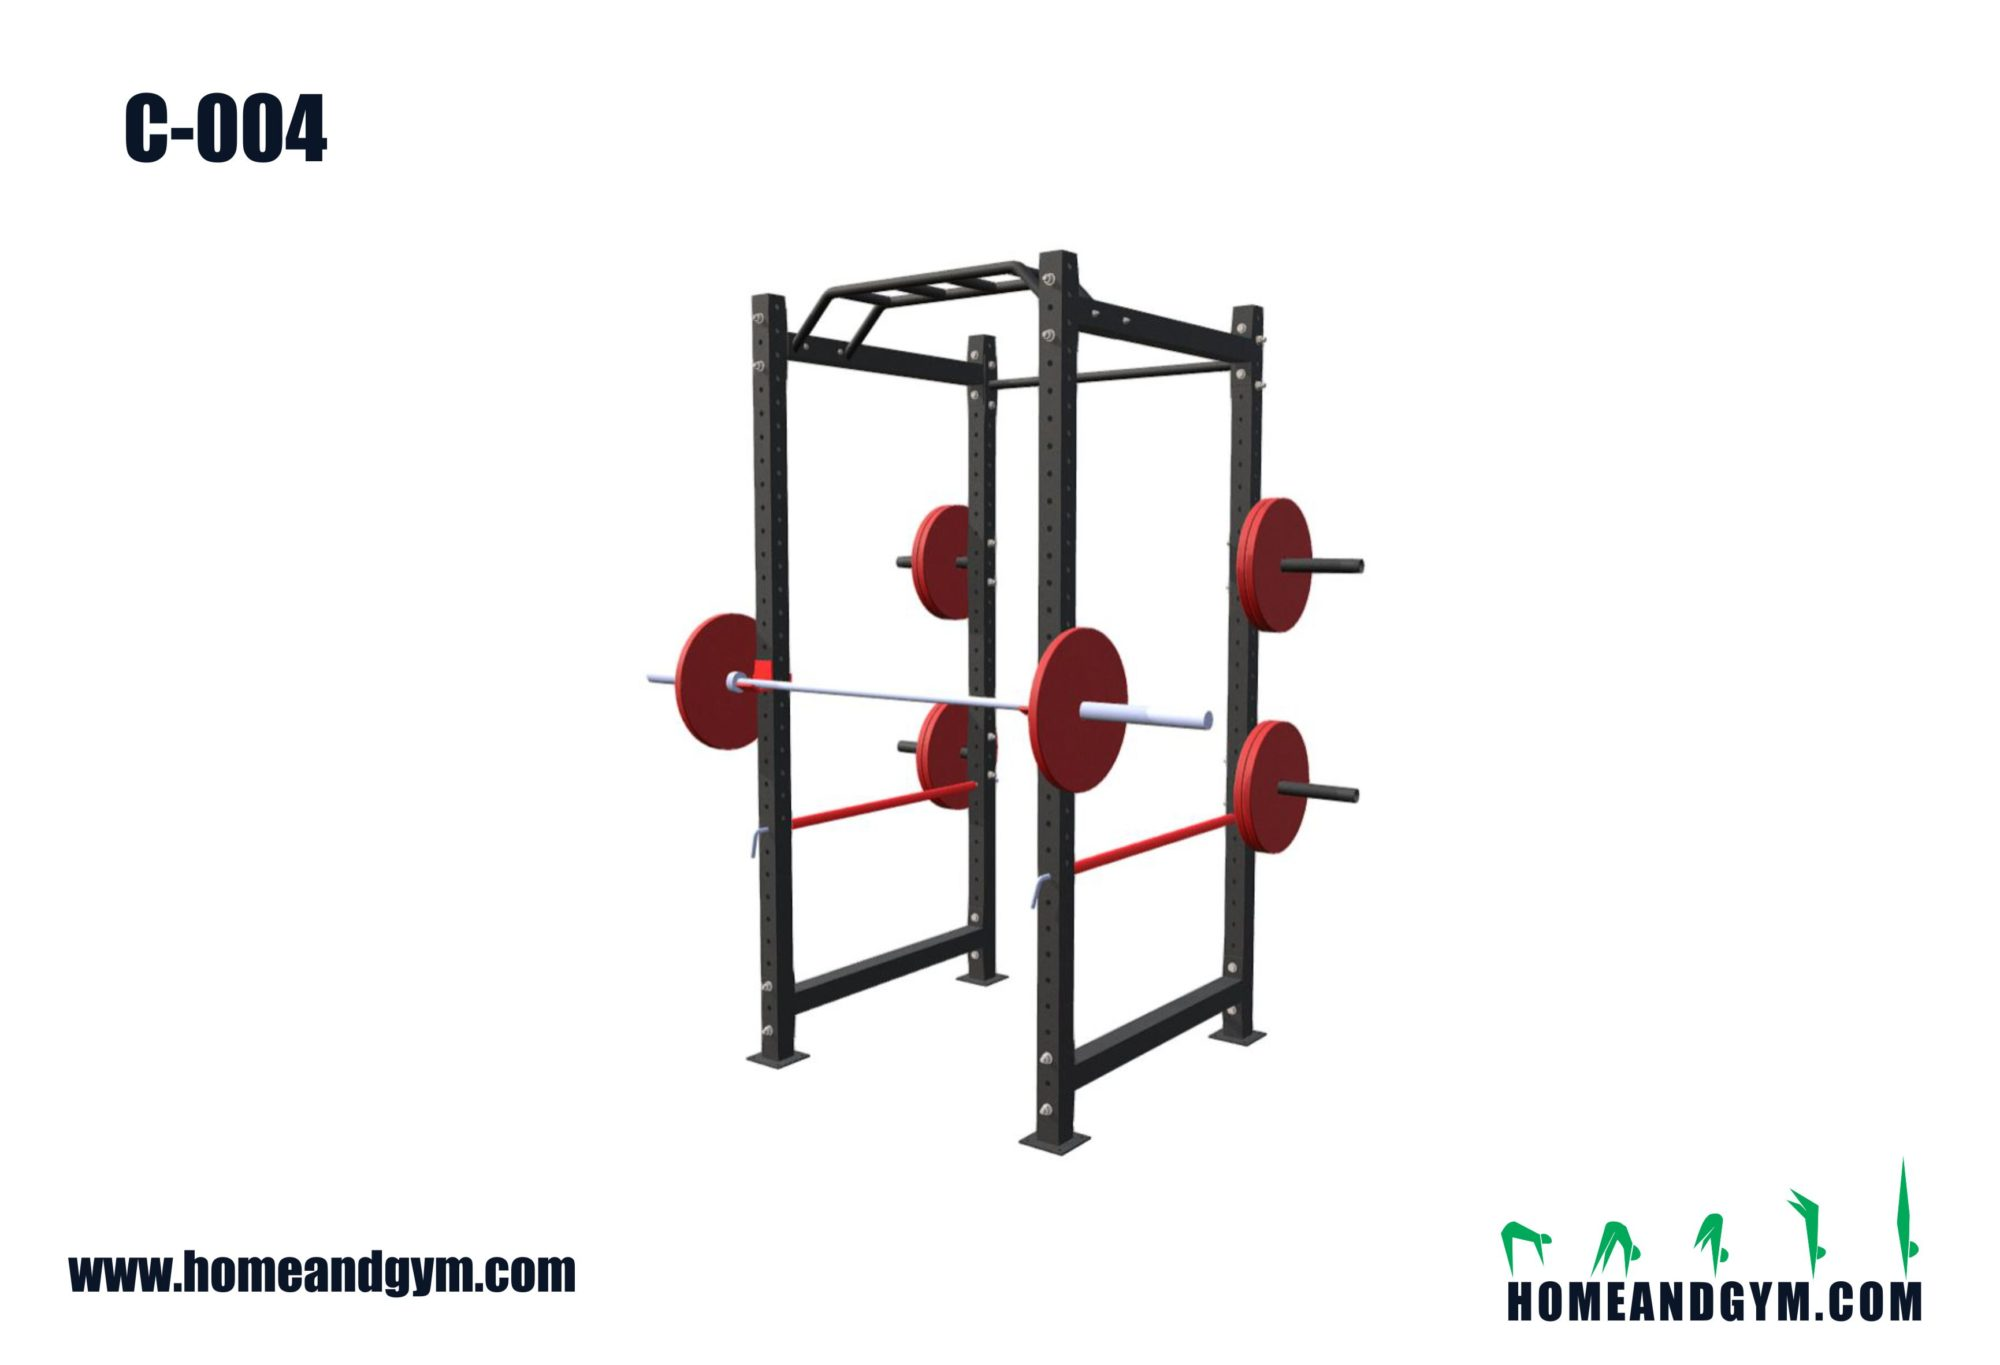 Power rack y equipo para gimnasio en mexico